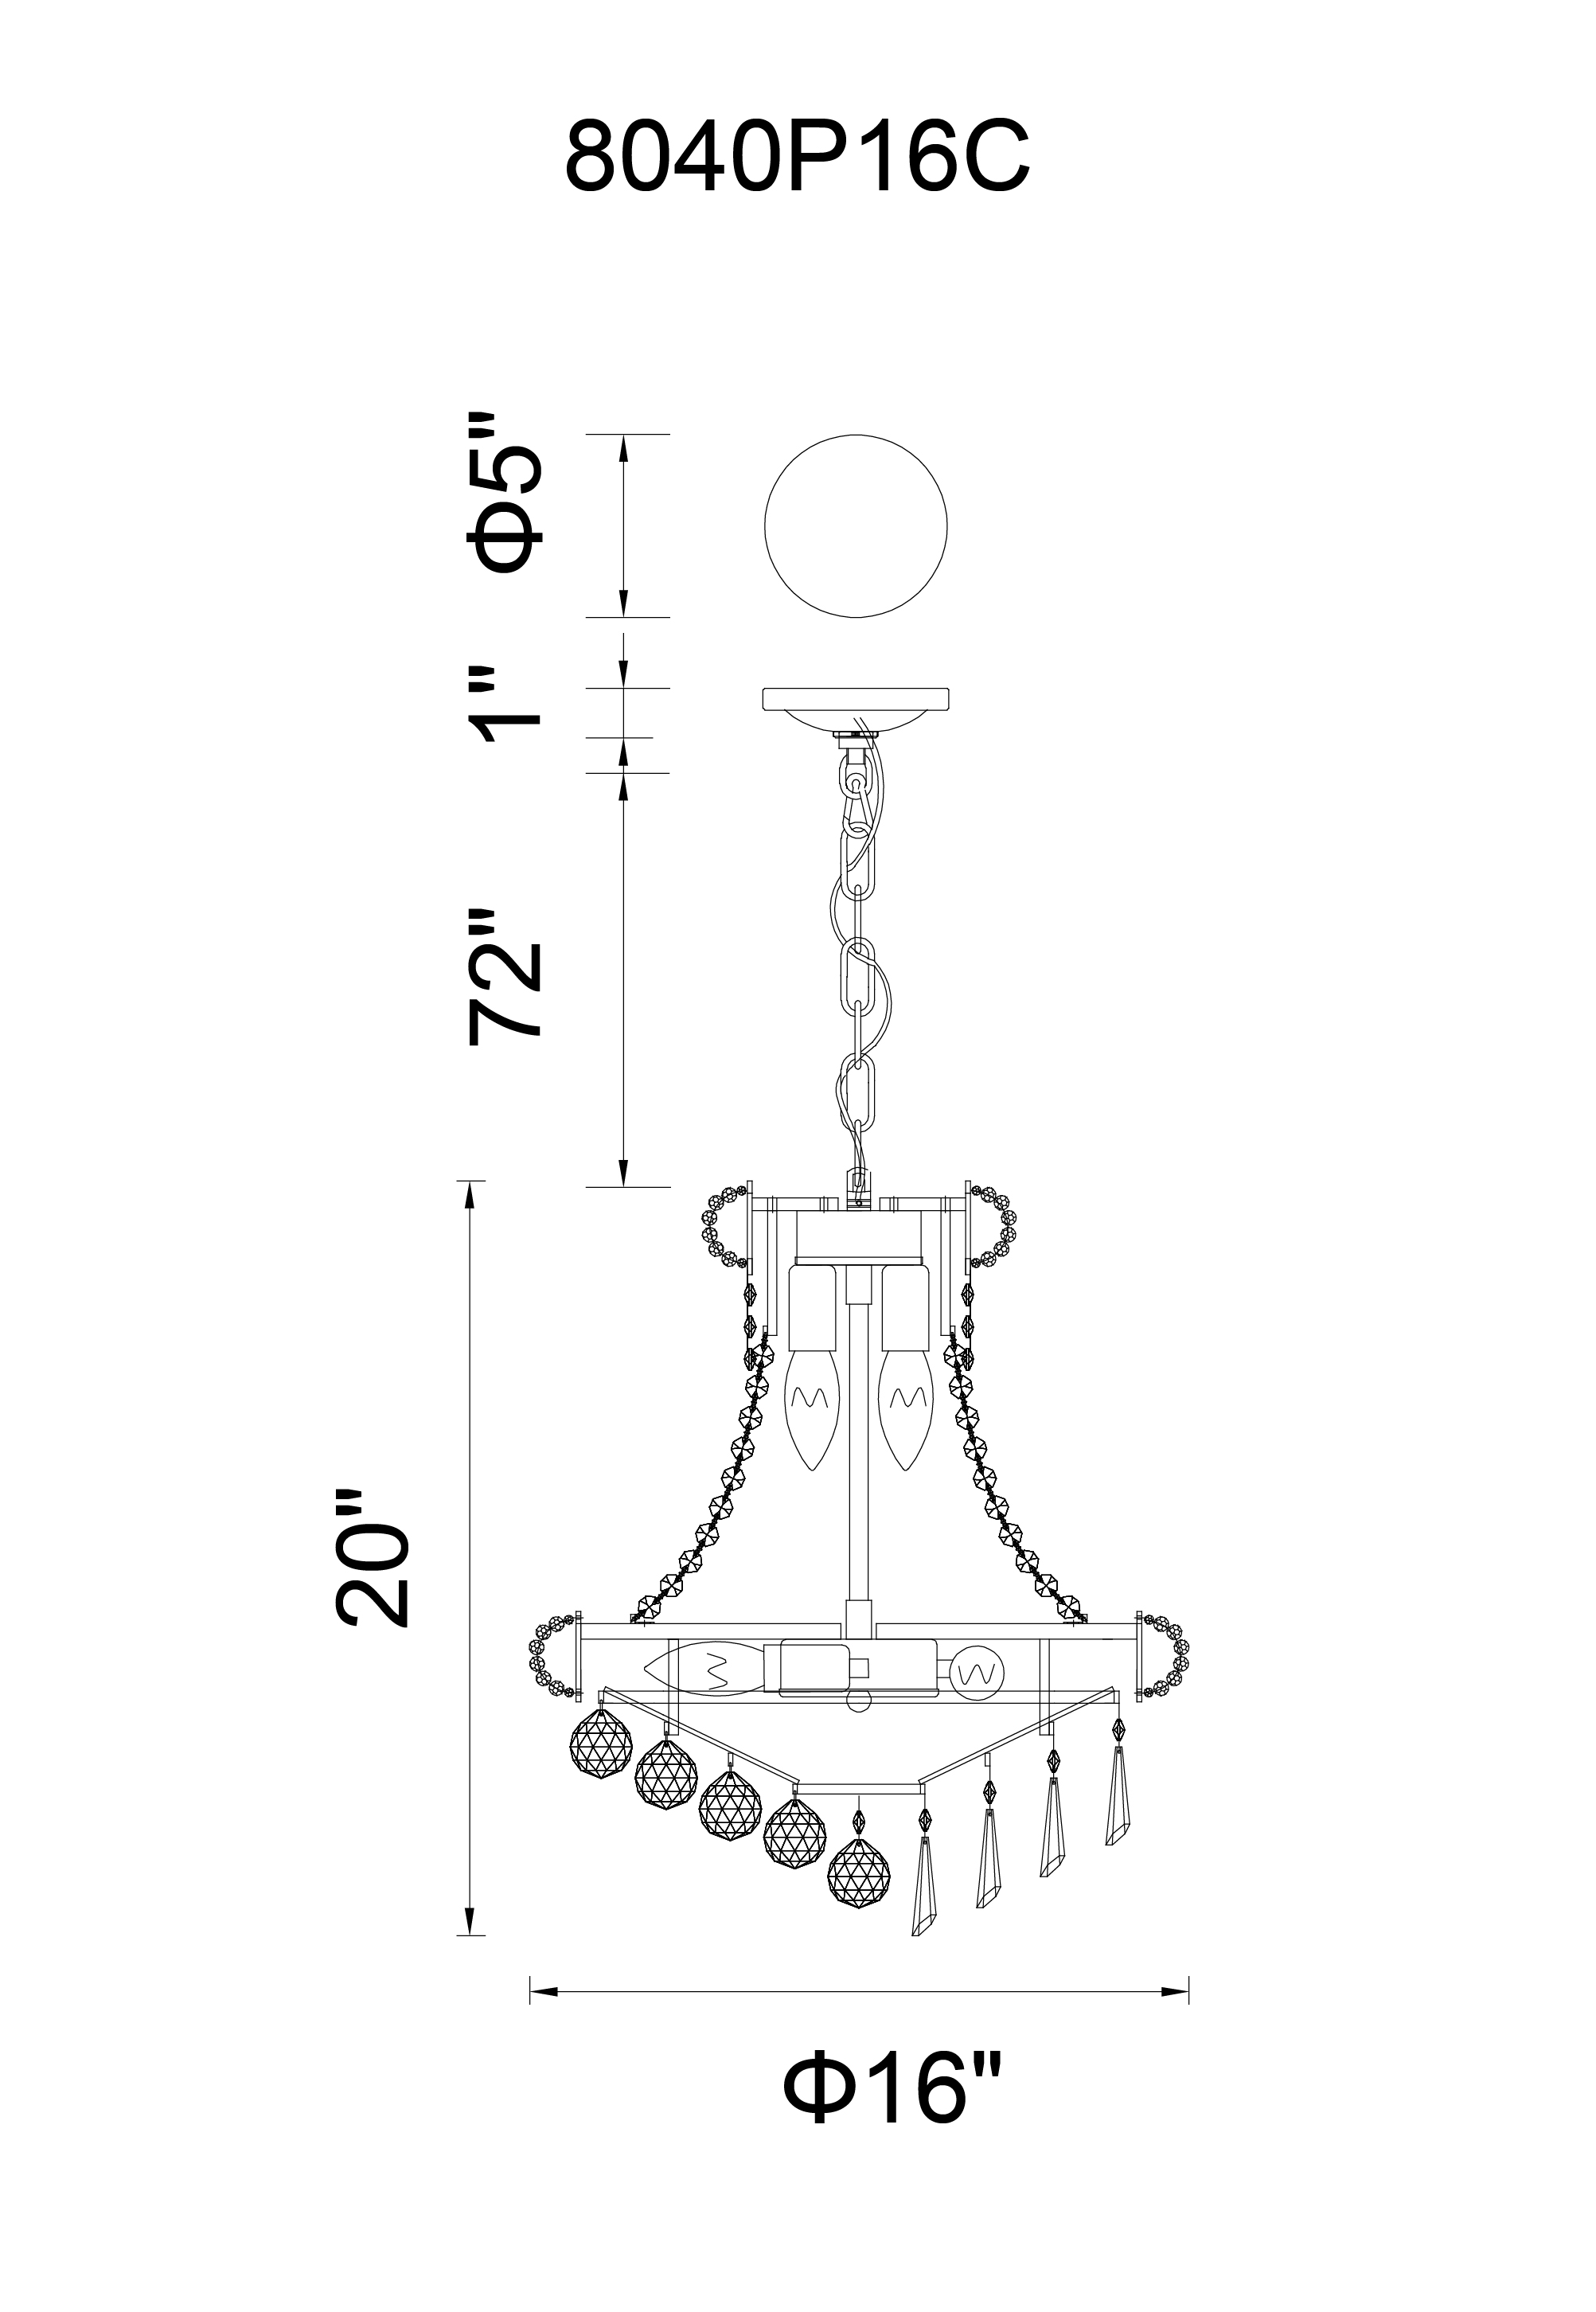 CWI Lighting Kingdom 6 Light Down Chandelier With Chrome Finish Model: 8040P16C Line Drawing